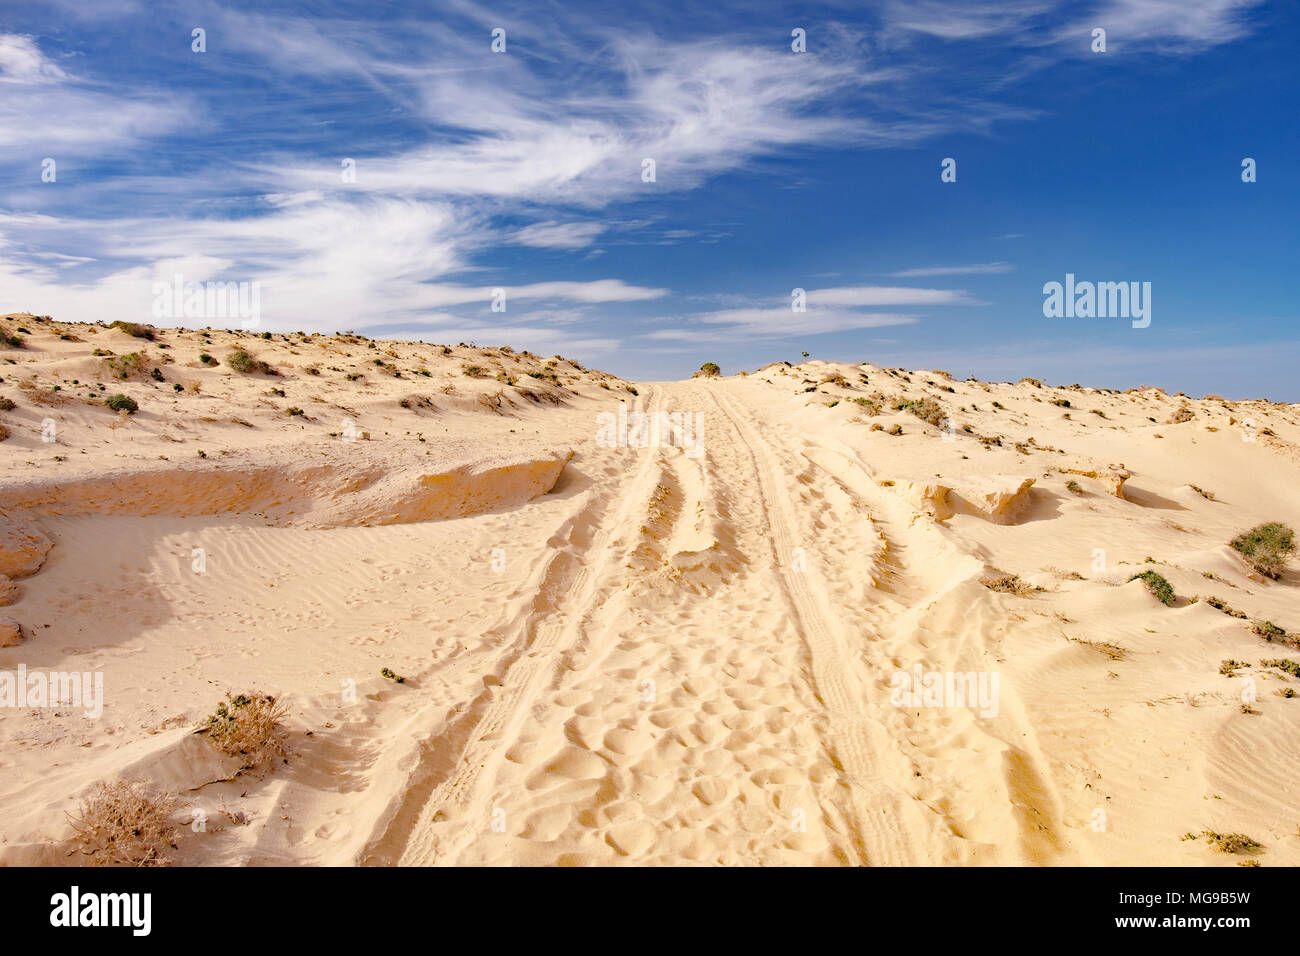 Track in sand dune. - Stock Image